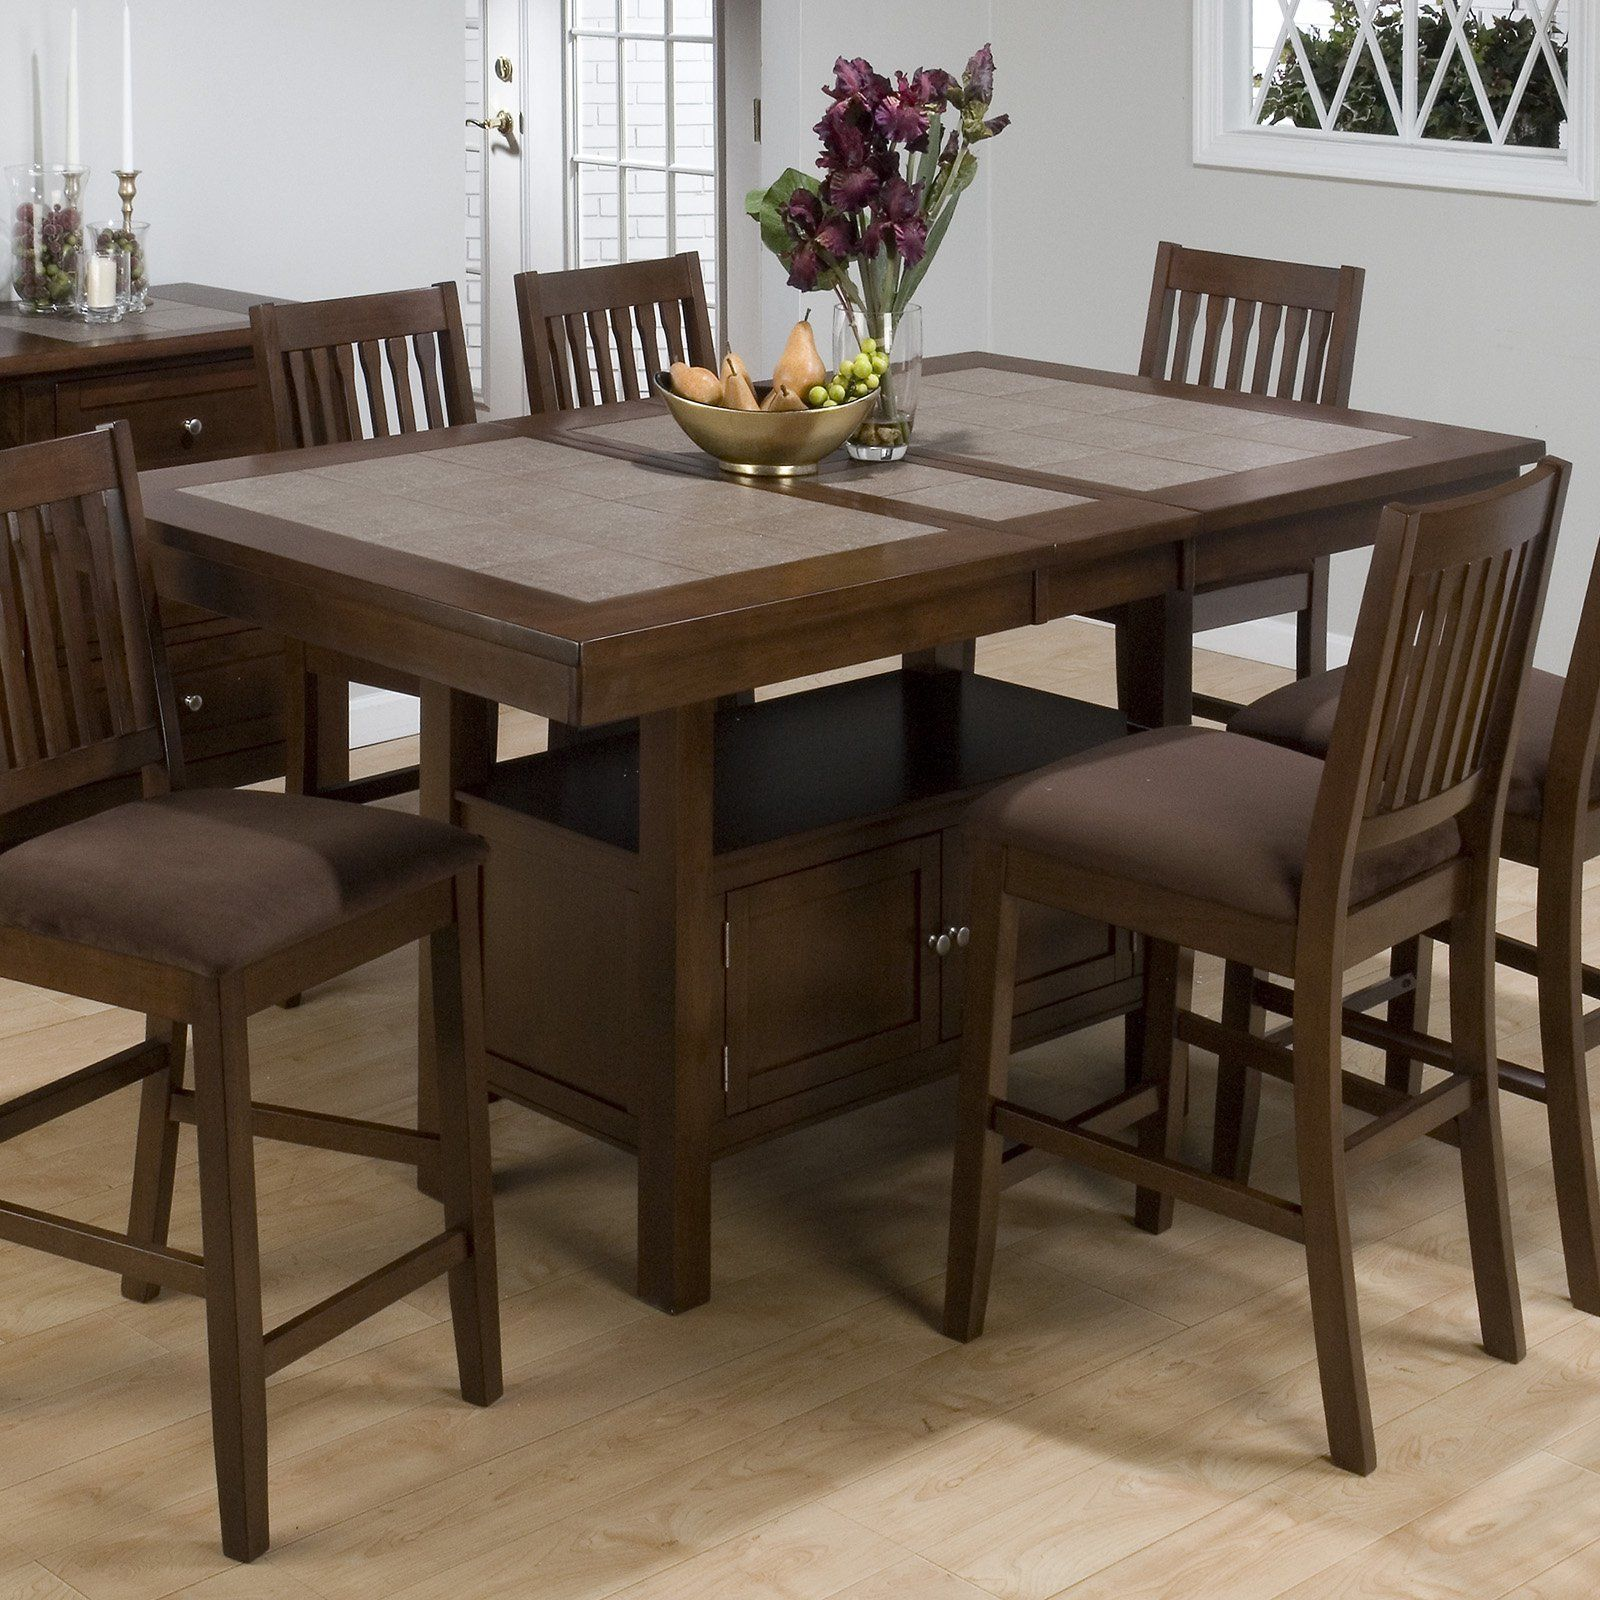 Jofran Trumbull Tile Top Counter Height Storage Dining Table 529 99